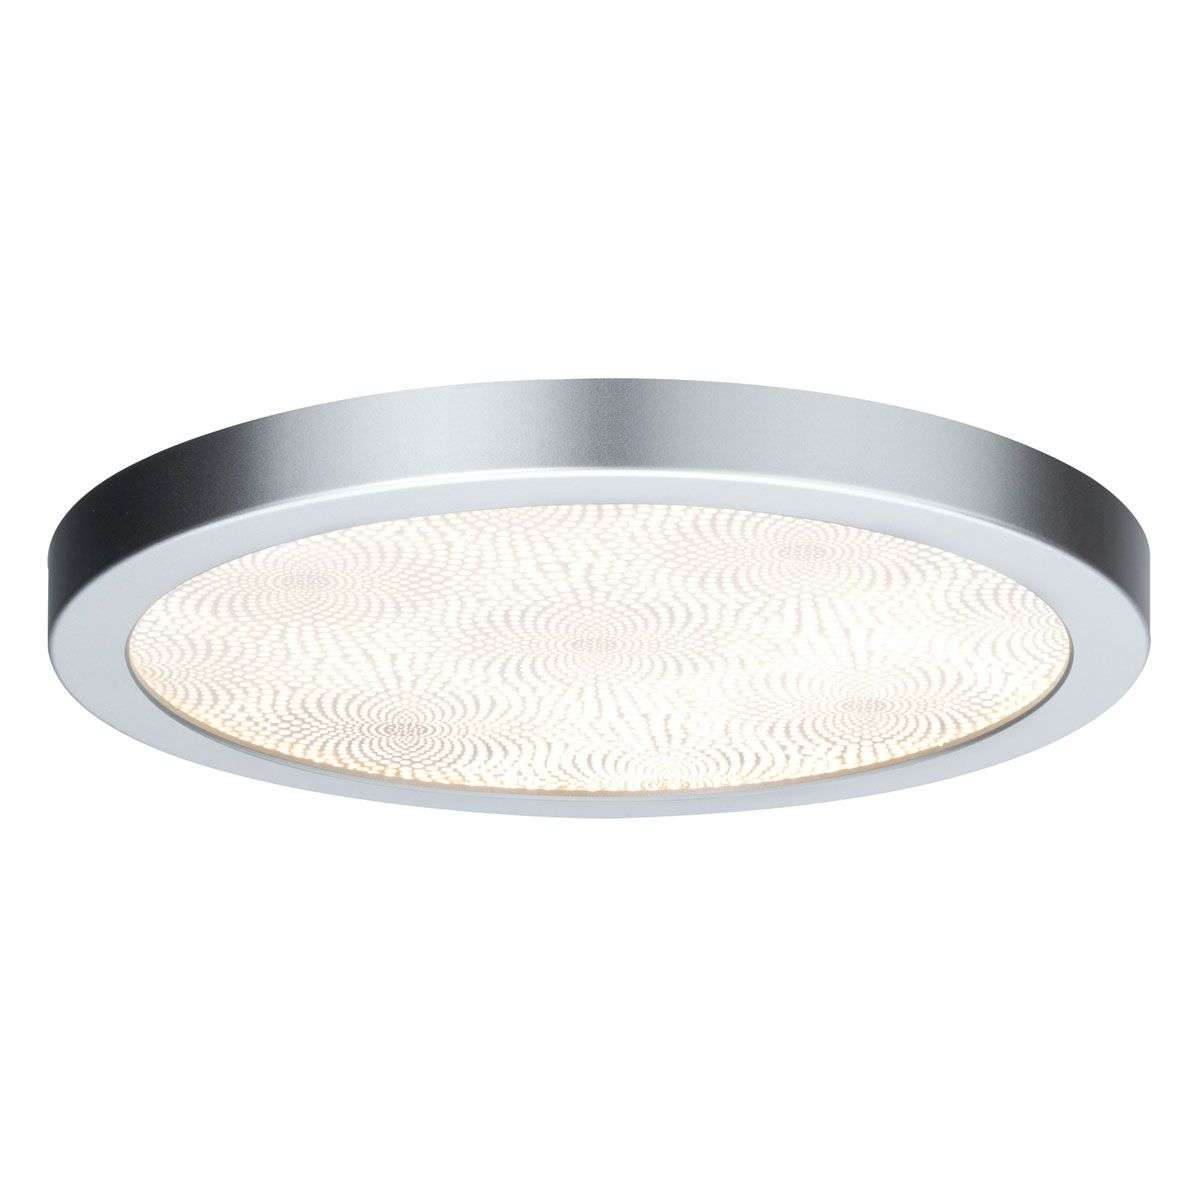 Round bathroom ceiling light Ivy with LED | Lights.ie